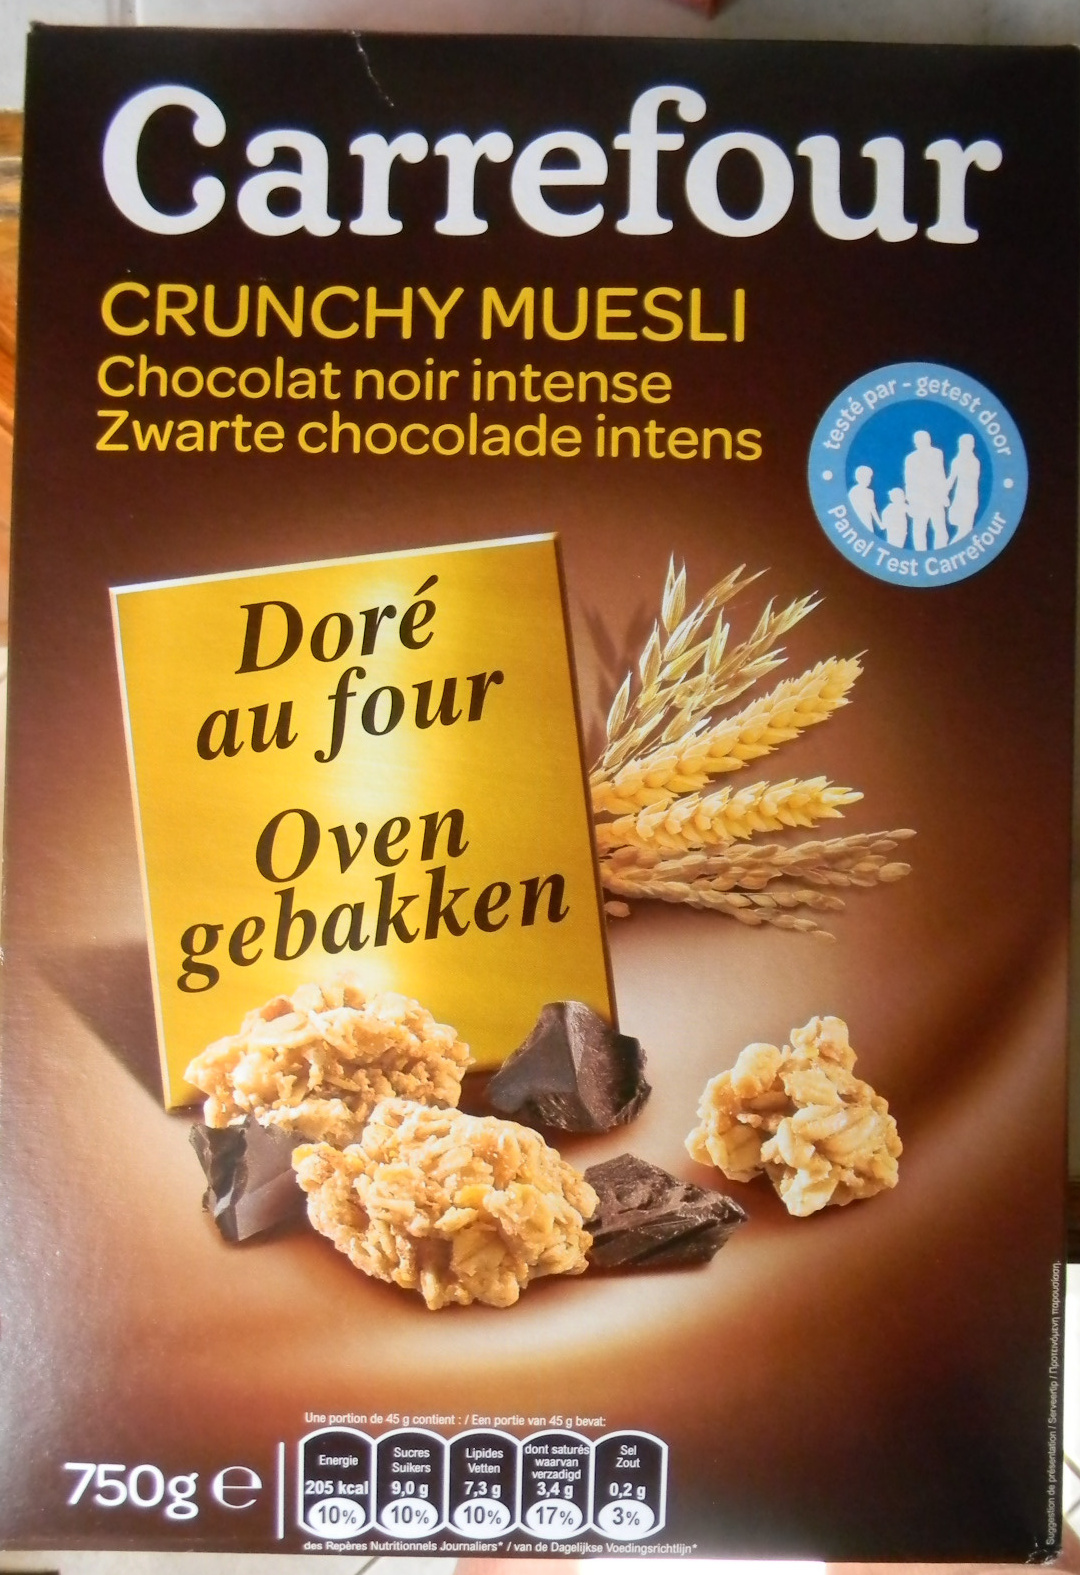 Crunchy chocolate intenso - Producte